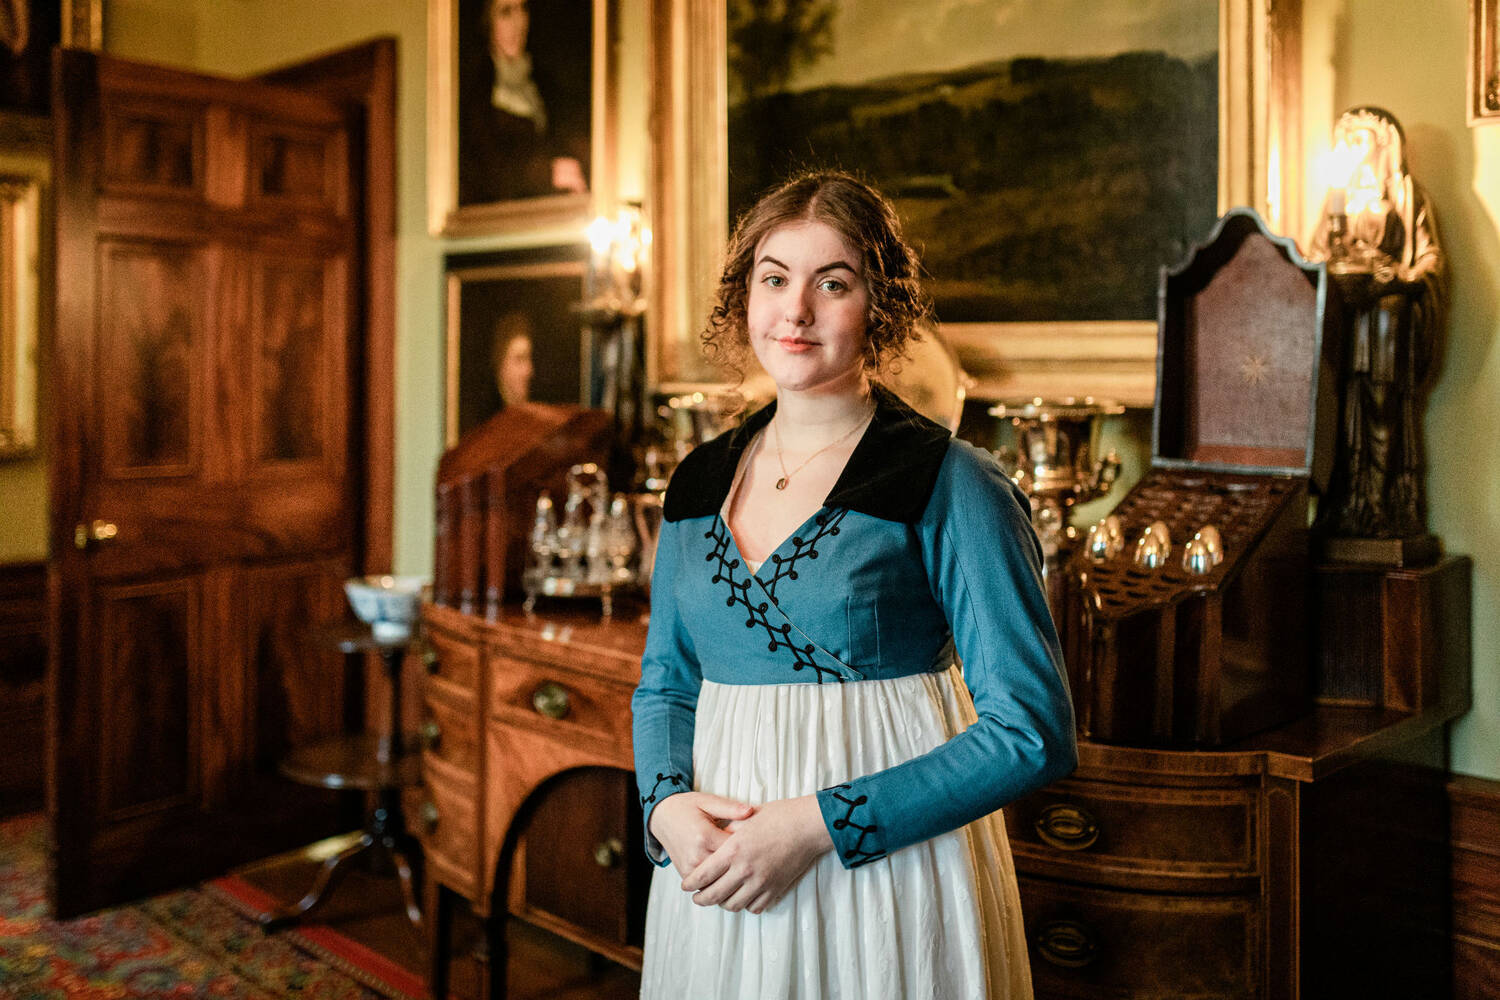 Woman in period costume in a rooms with paintings lining the walls